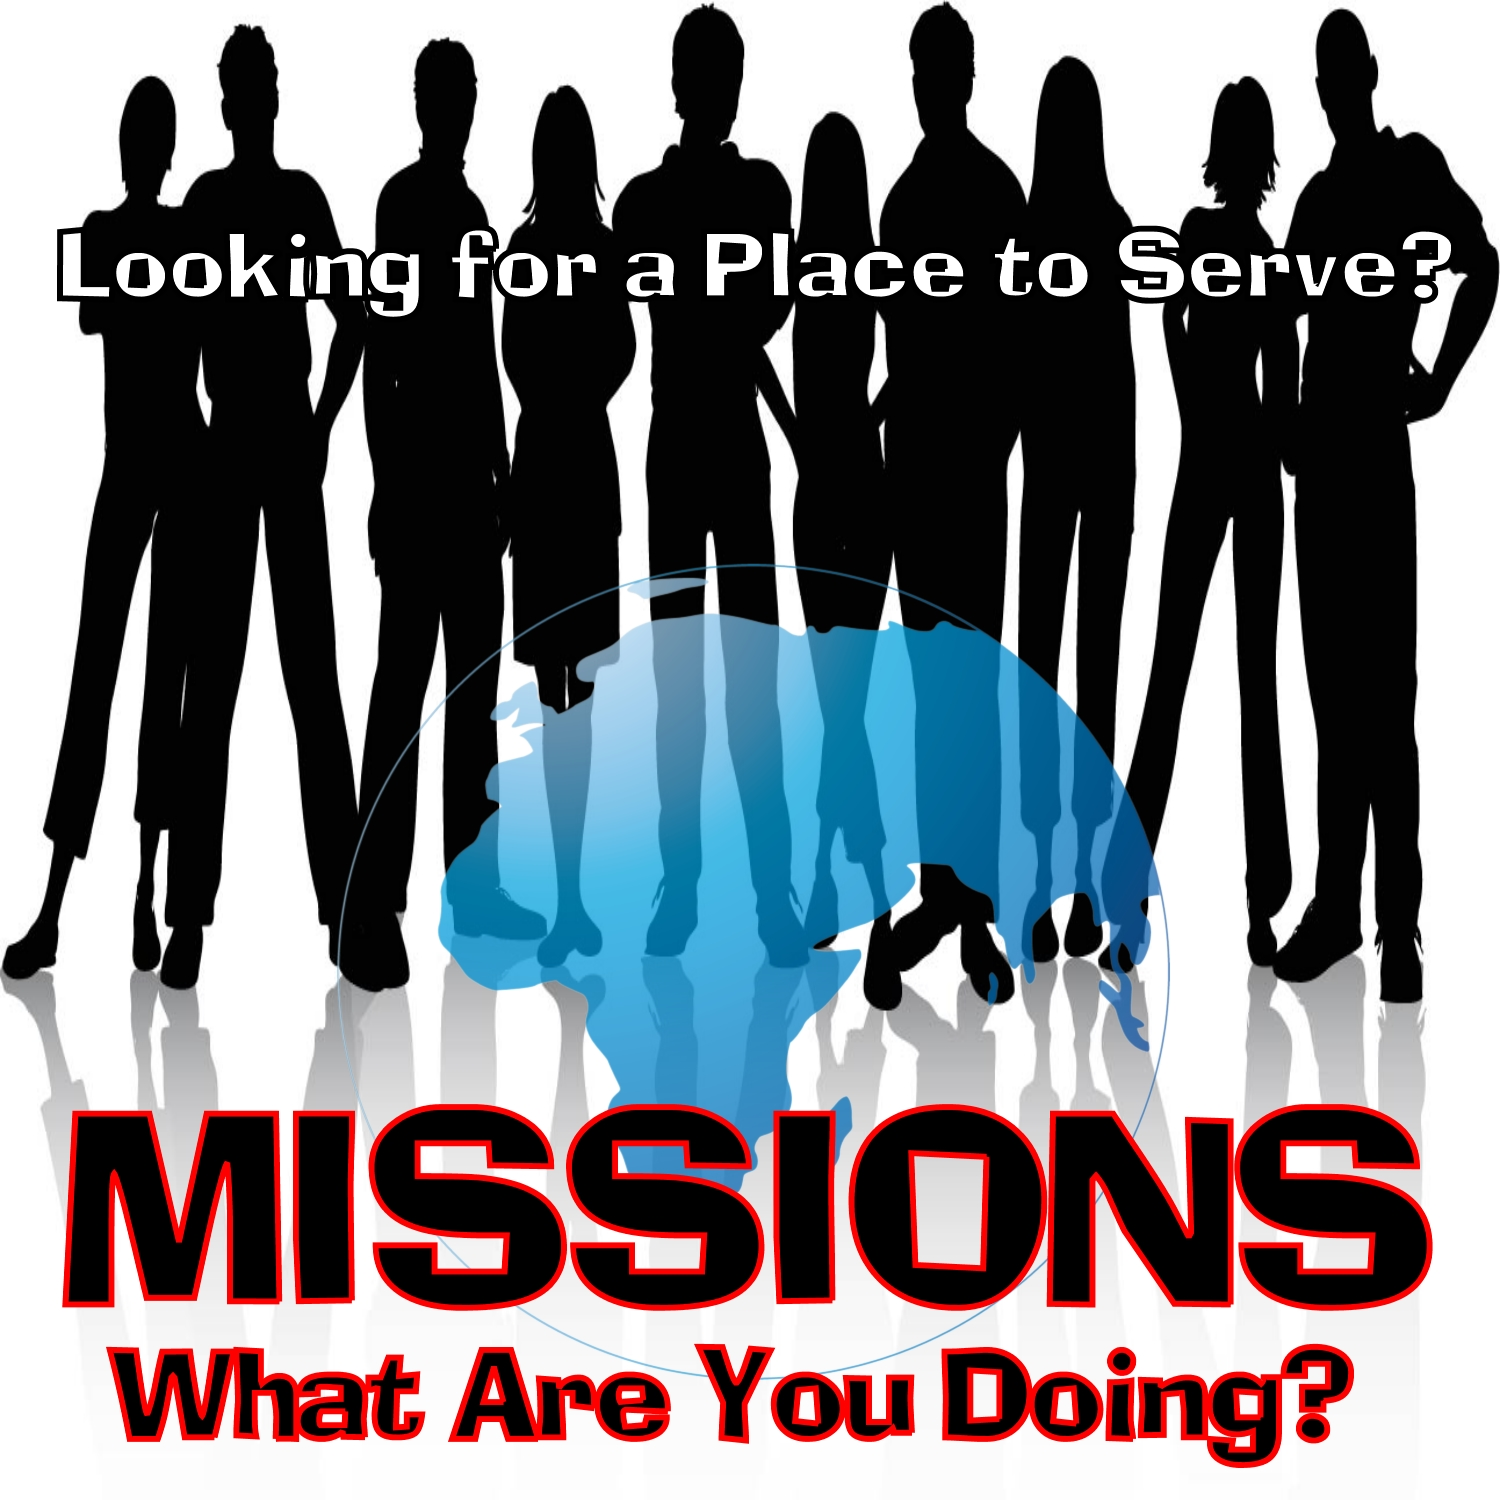 Work is Mission